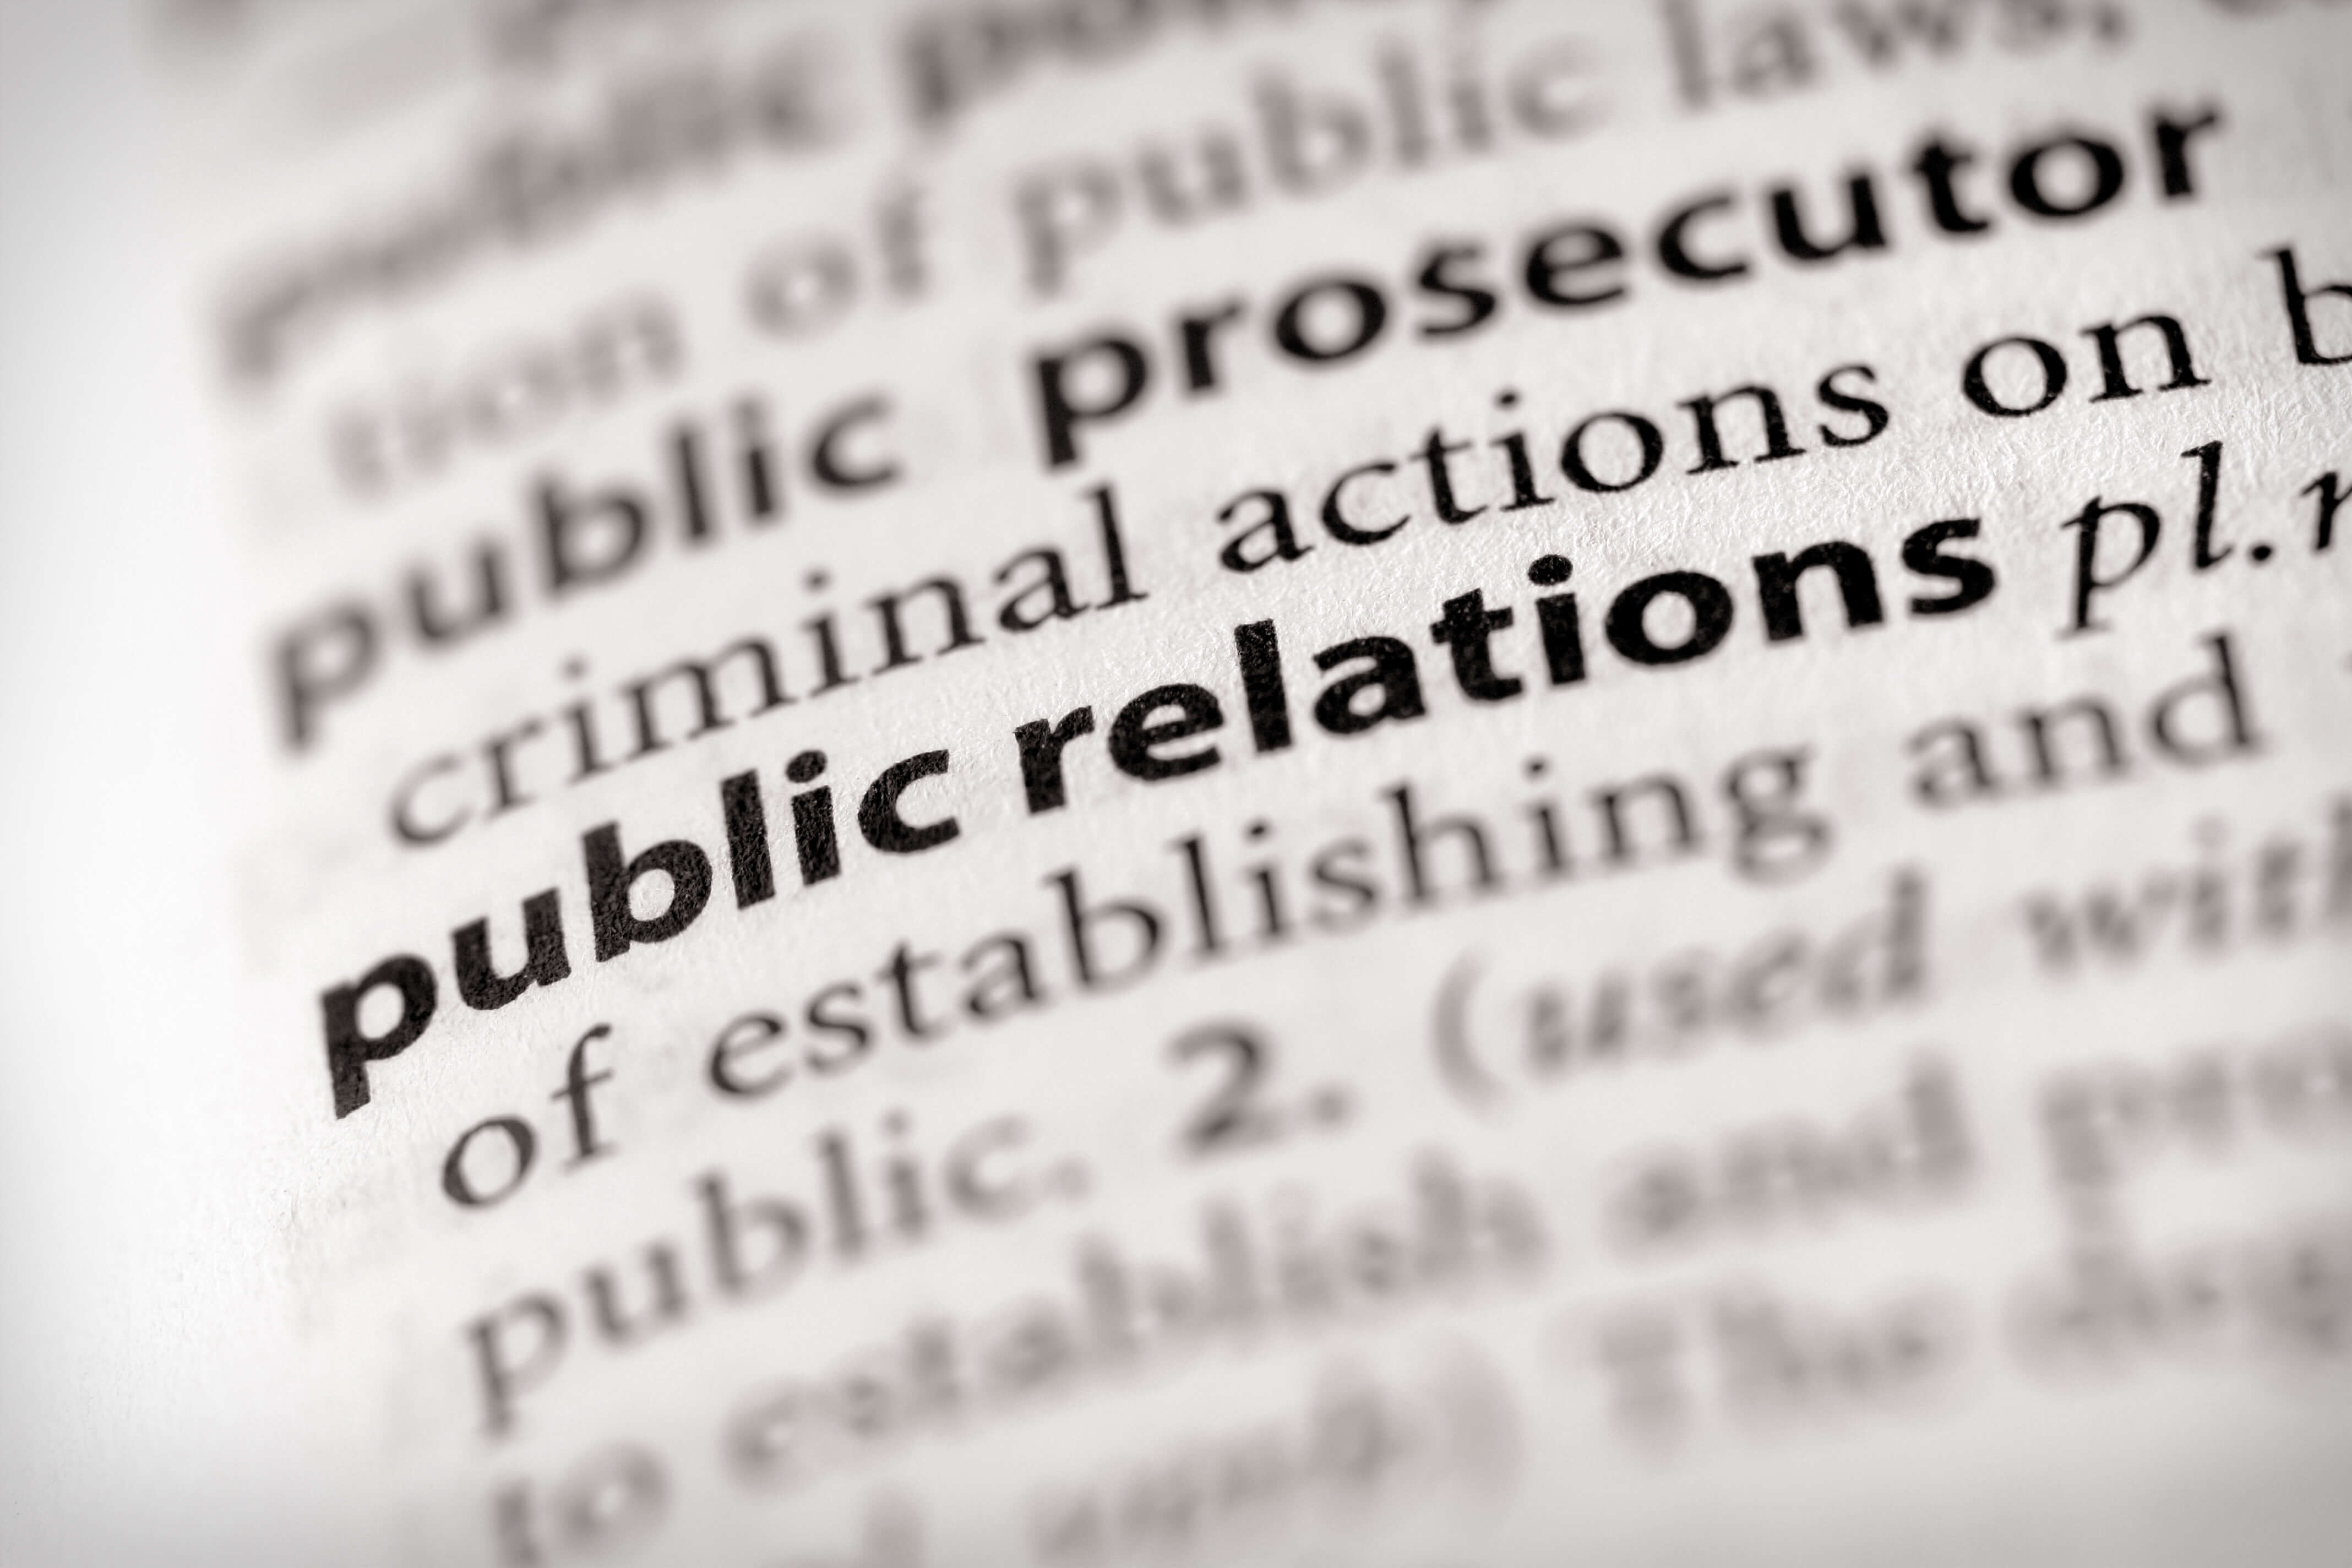 Public relations is a necessity for small business